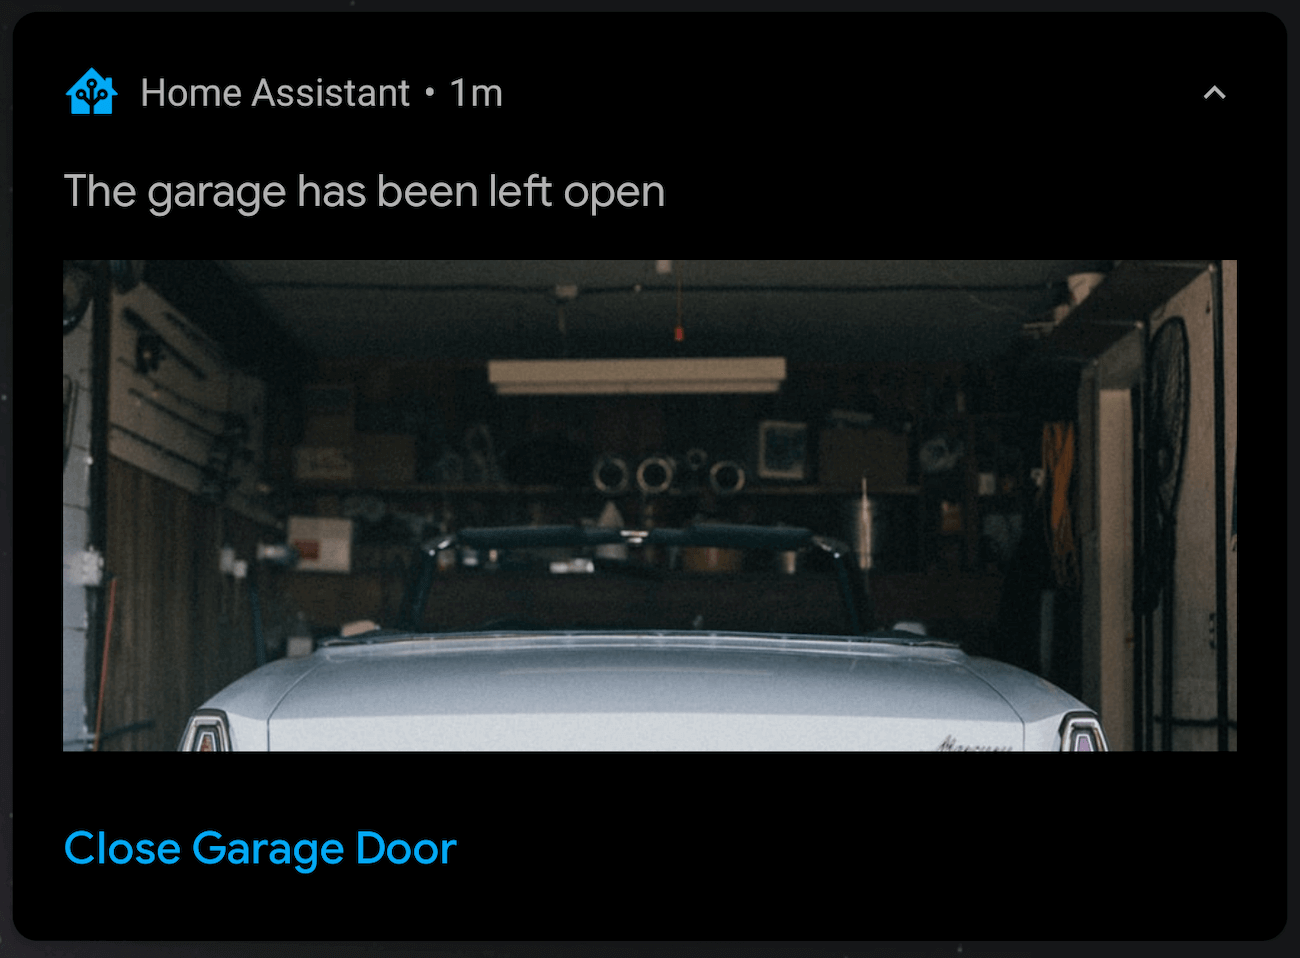 A notification showing an open garage